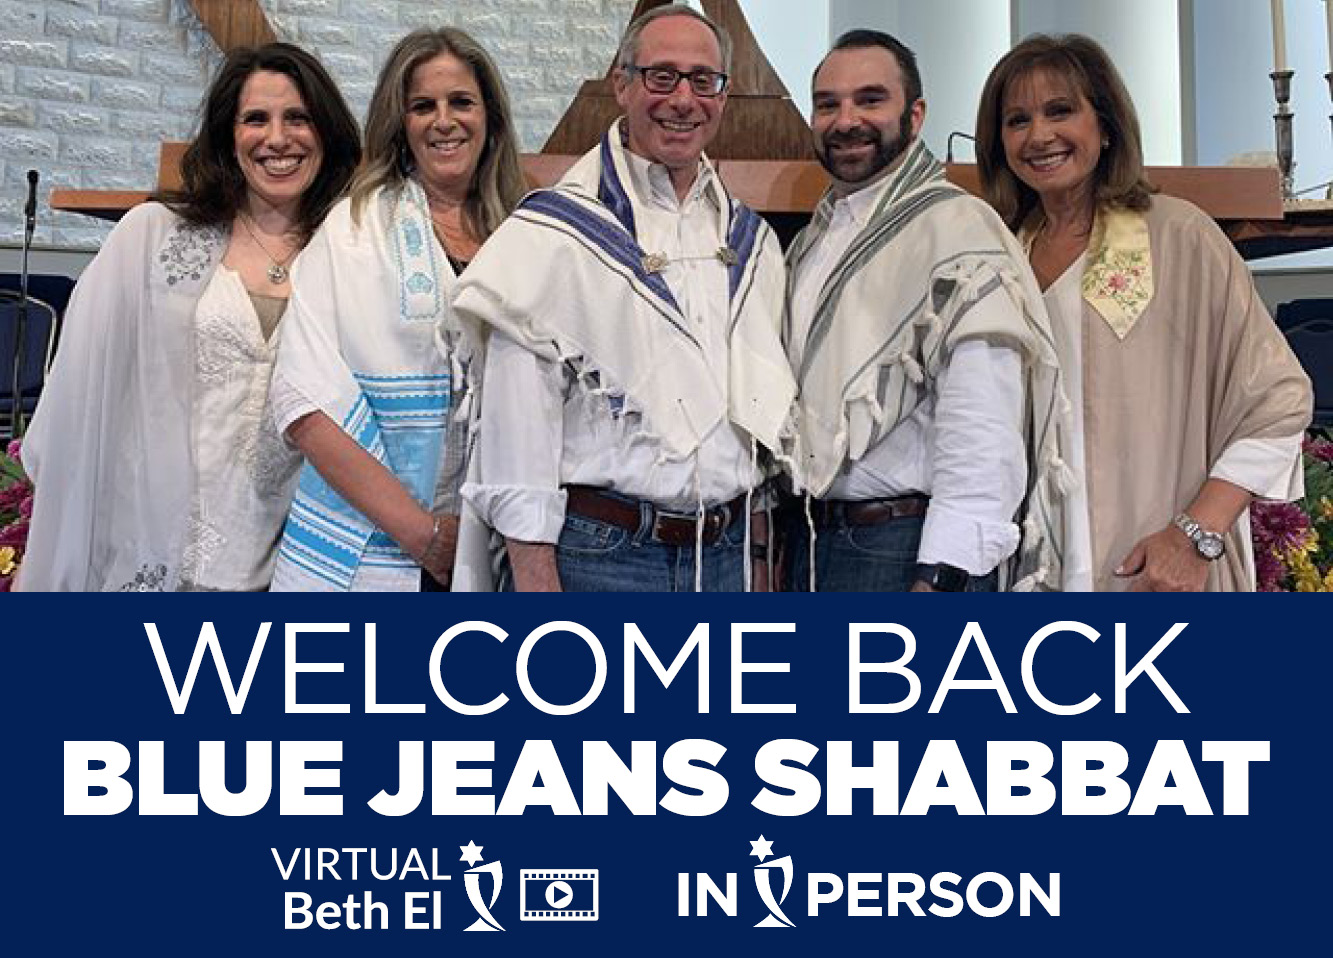 Welcome Back Blue Jeans Shabbat event graphic August 2021